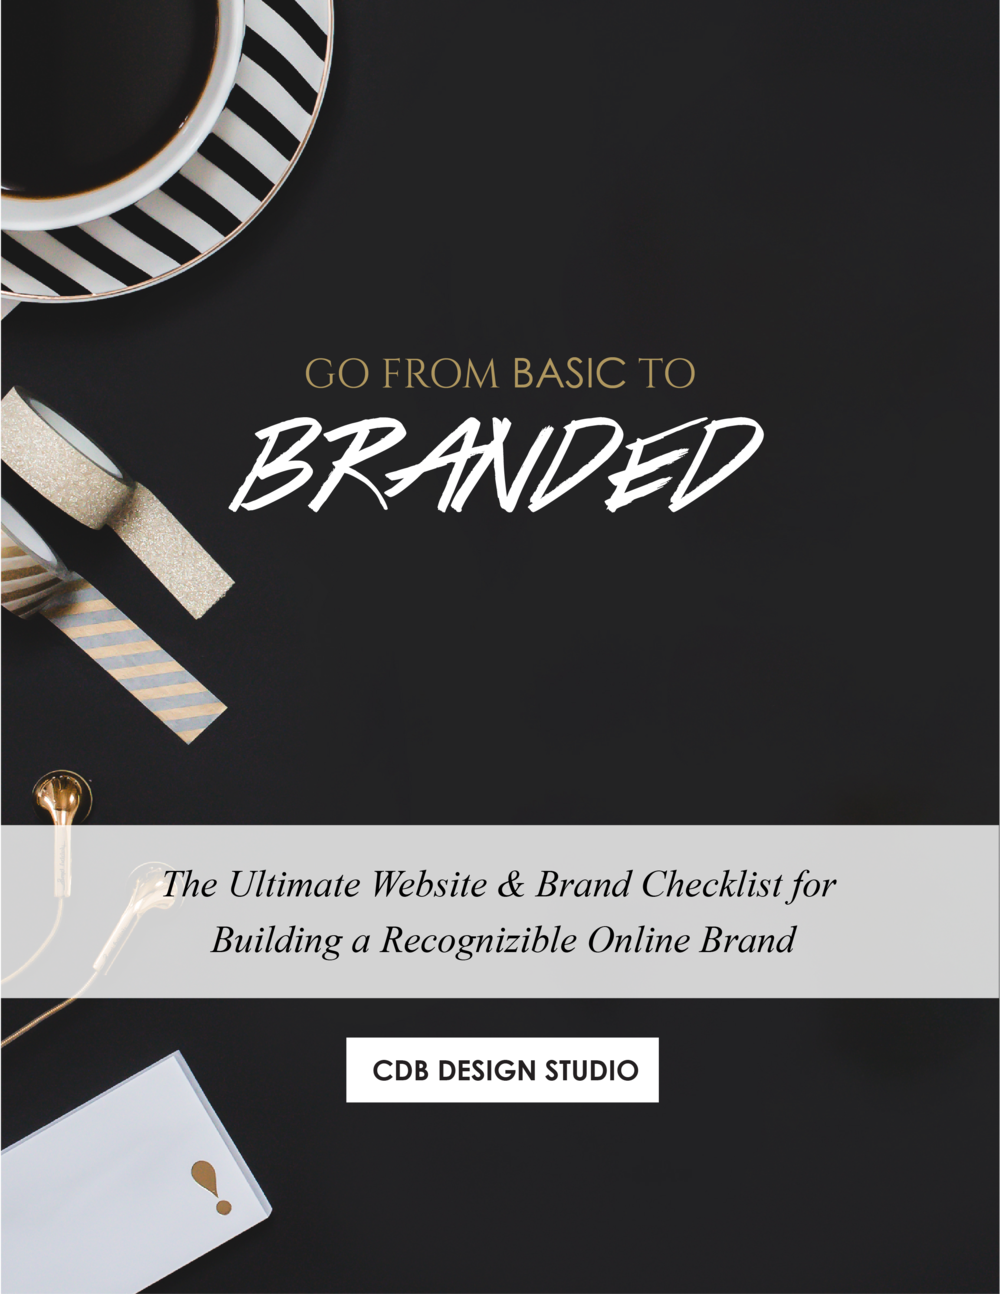 CDB Website and Brand Checklist-Basic to Branded Squarespace